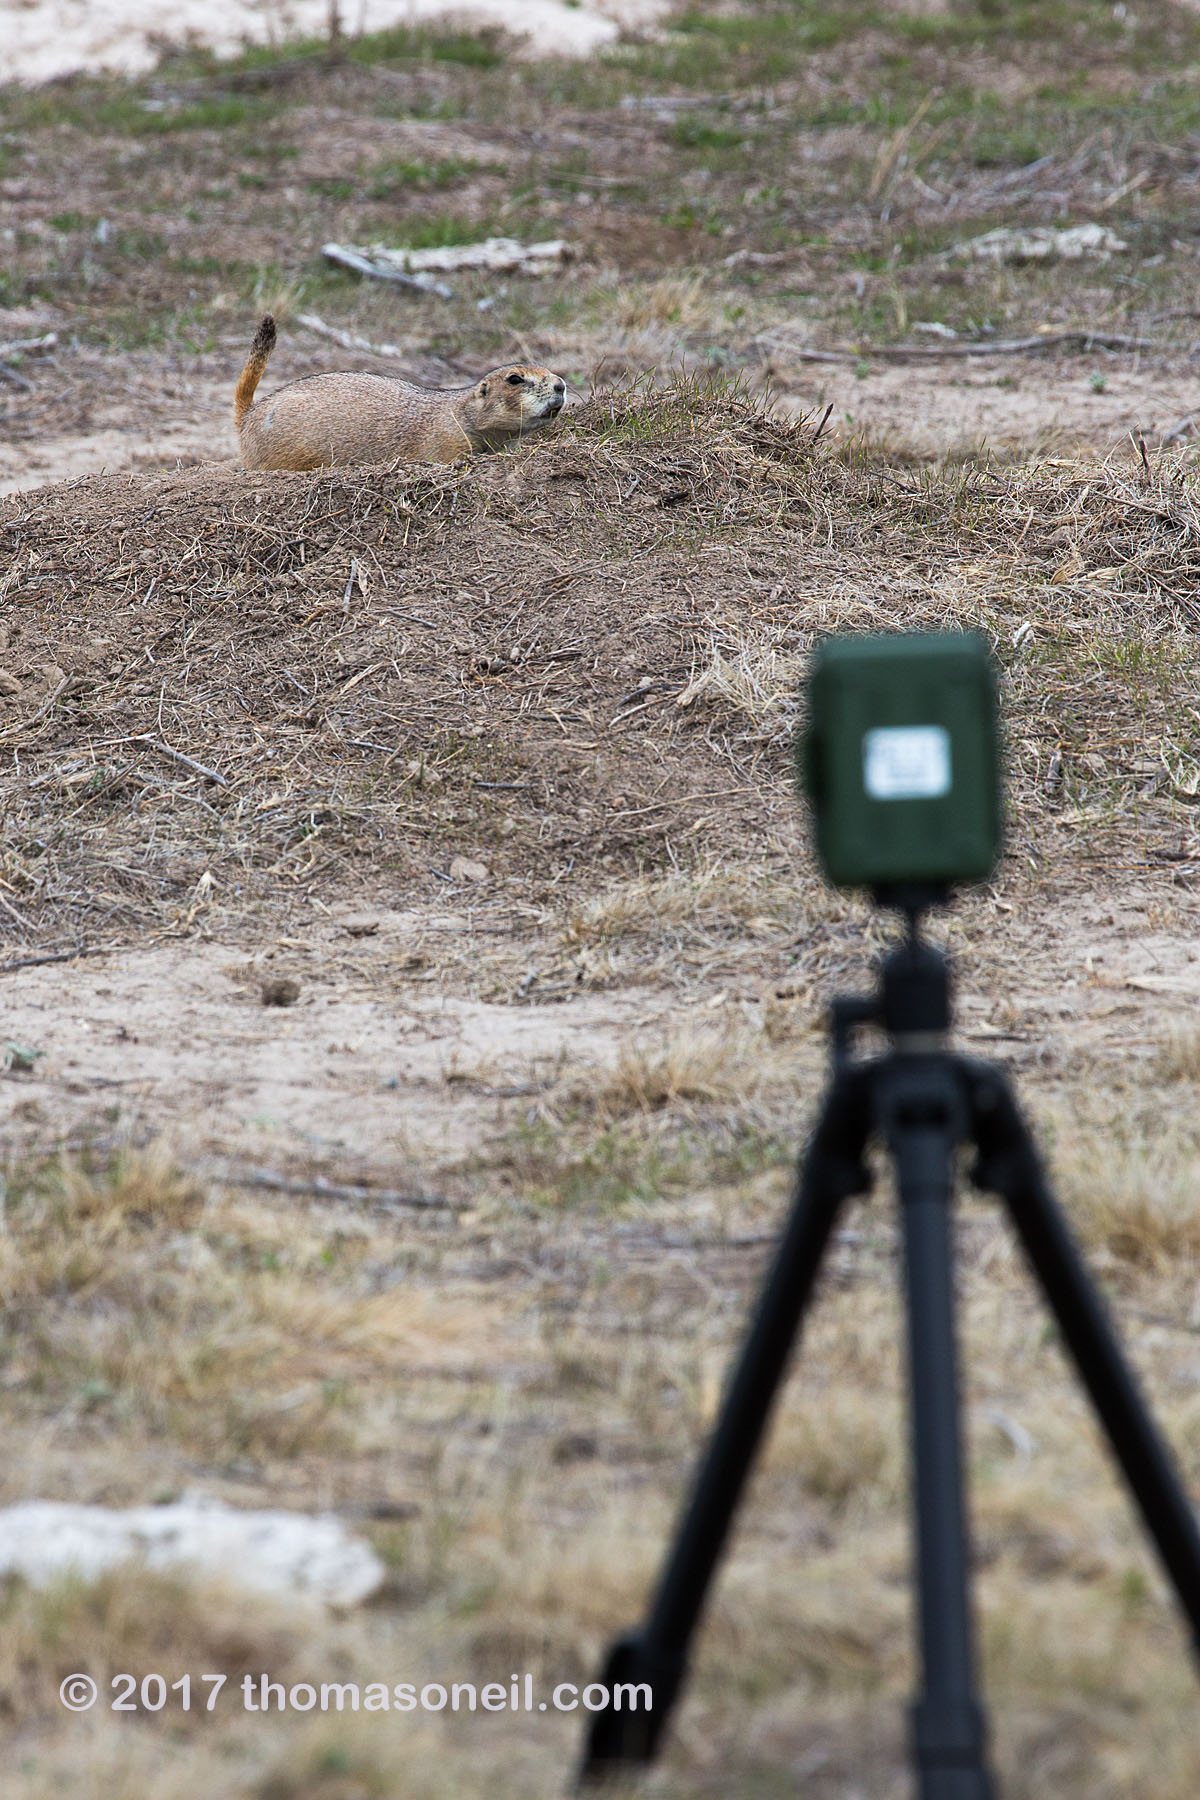 Trailcam setup in a prairie dog town, Conata Basin, South Dakota, September 2017.  This temporary setup resulted in a video of a badger.  Click for next photo.